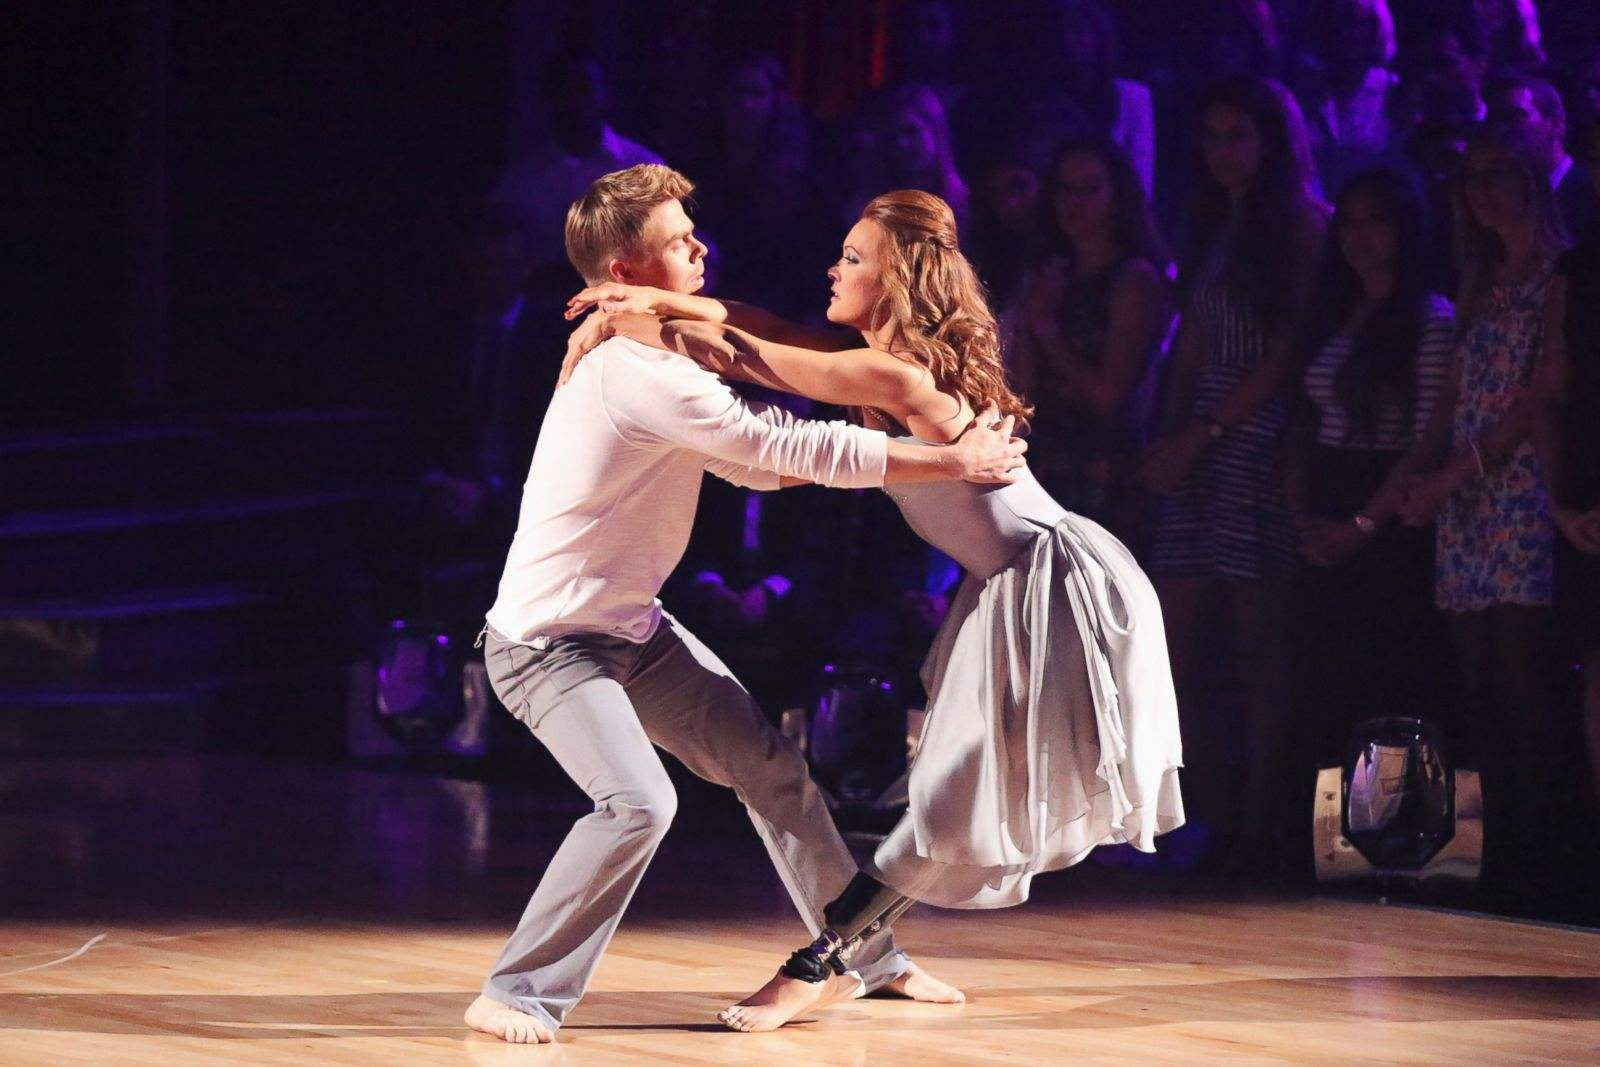 Amy Purdy and Derek Hough on Dancing with the Stars